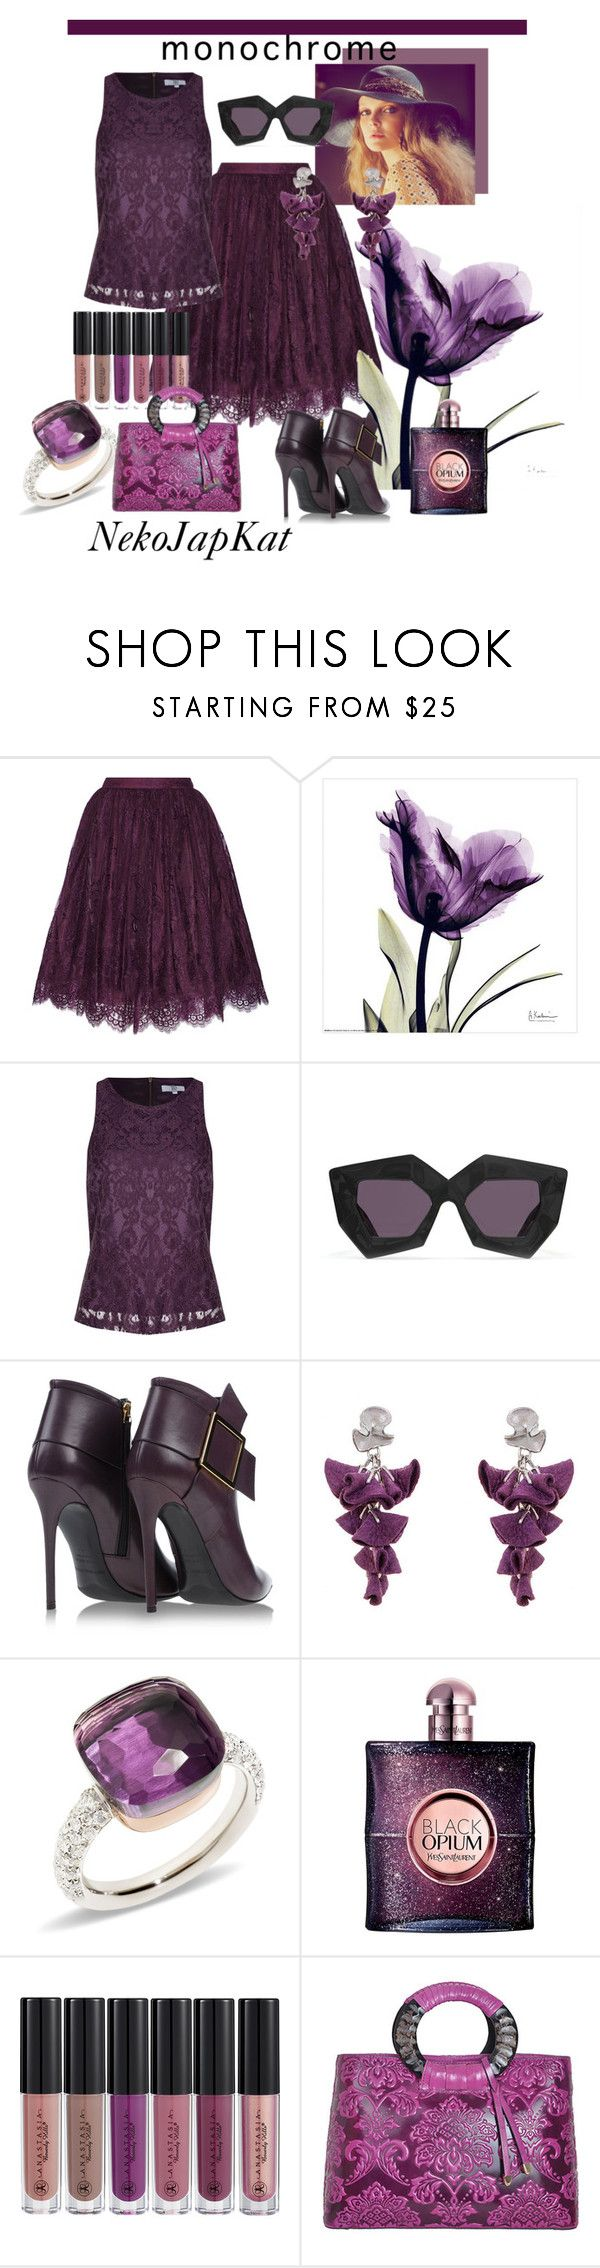 """mono"" by neko-m-tucker-smith ❤ liked on Polyvore featuring Alice + Olivia, True Decadence, House of Holland, Gianmarco Lorenzi, Pomellato, Yves Saint Laurent, Anastasia Beverly Hills and WithChic"